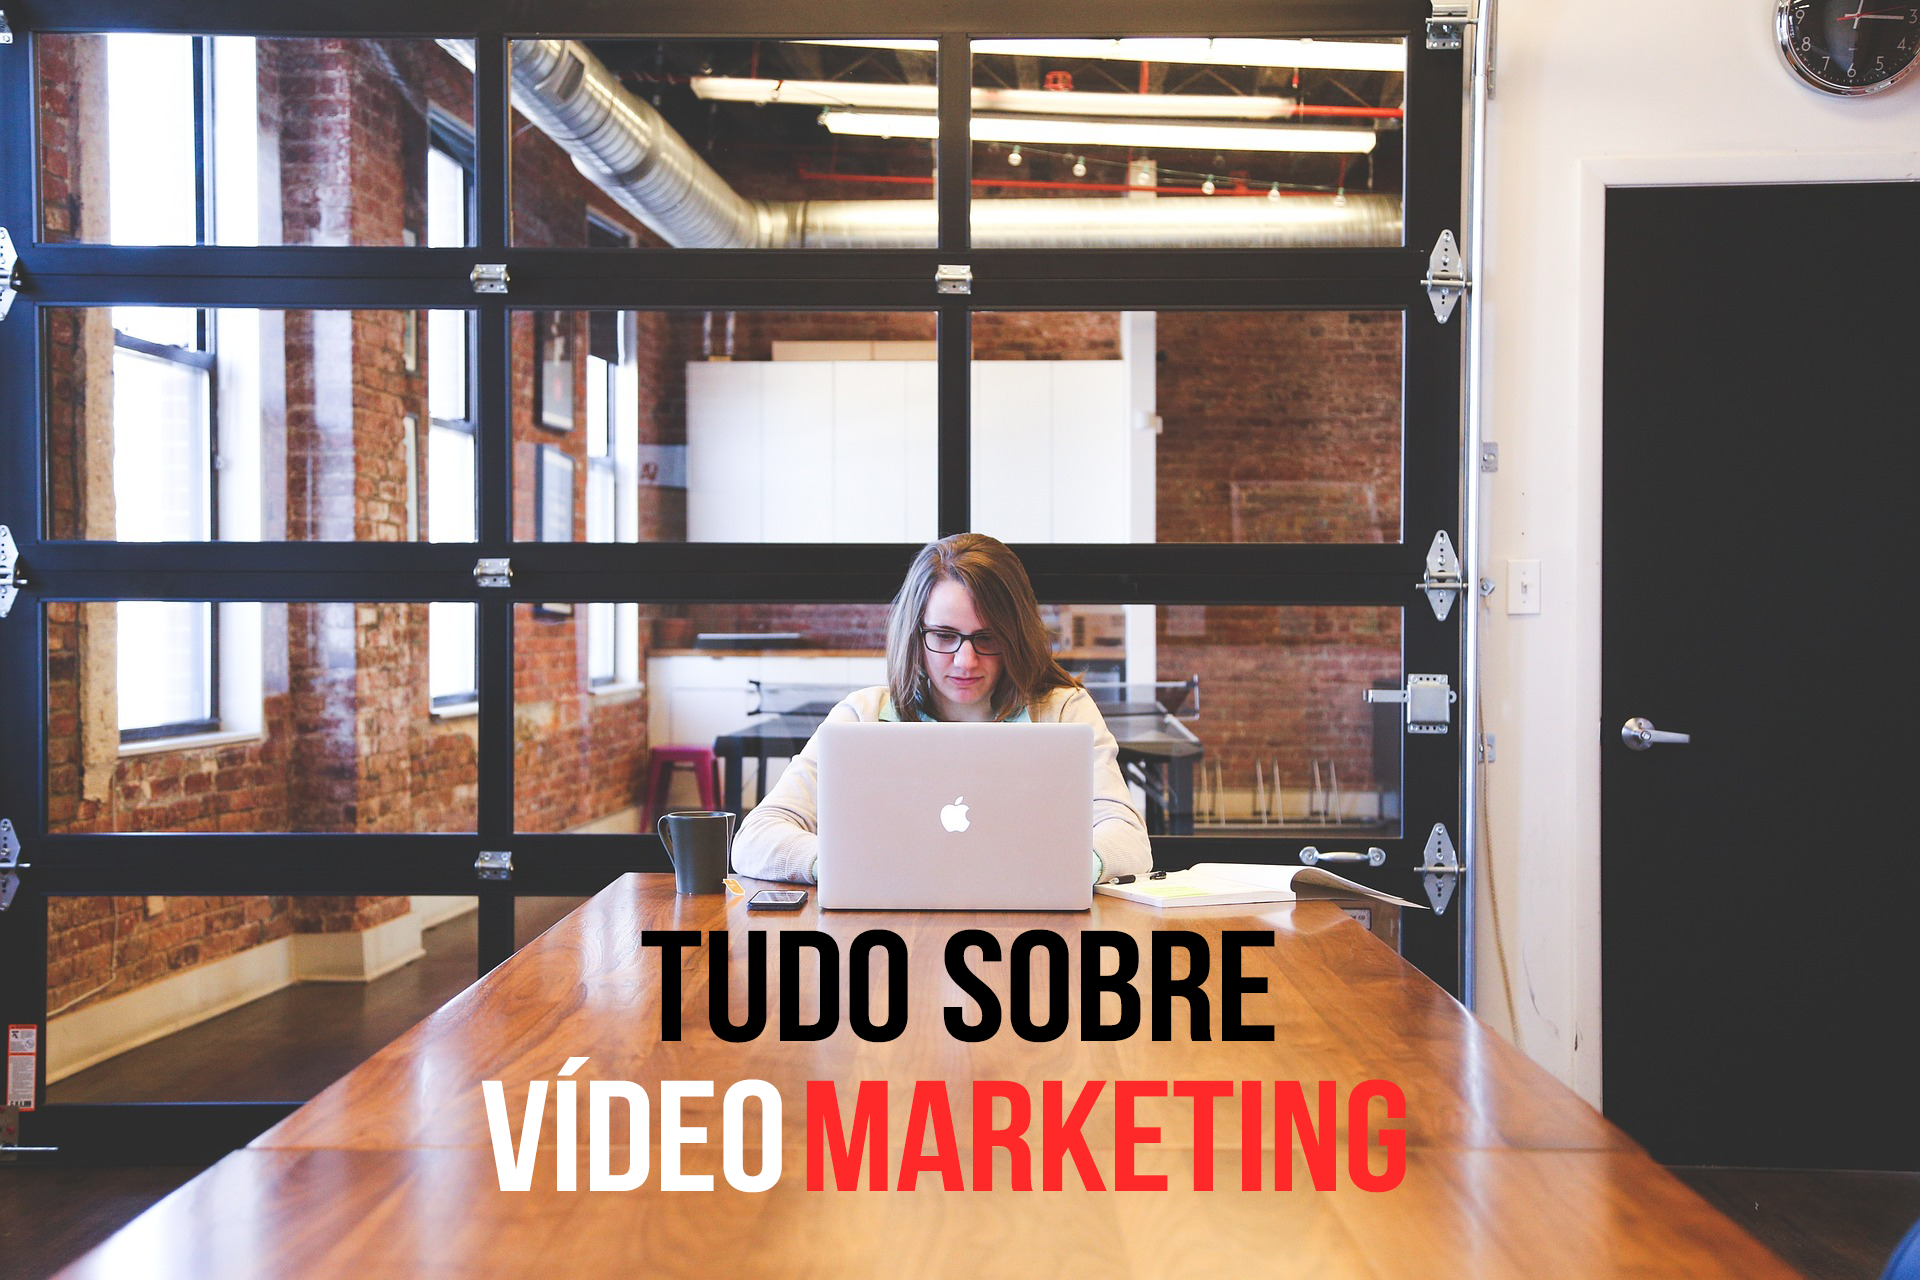 Tudo sobre Vídeo Marketing